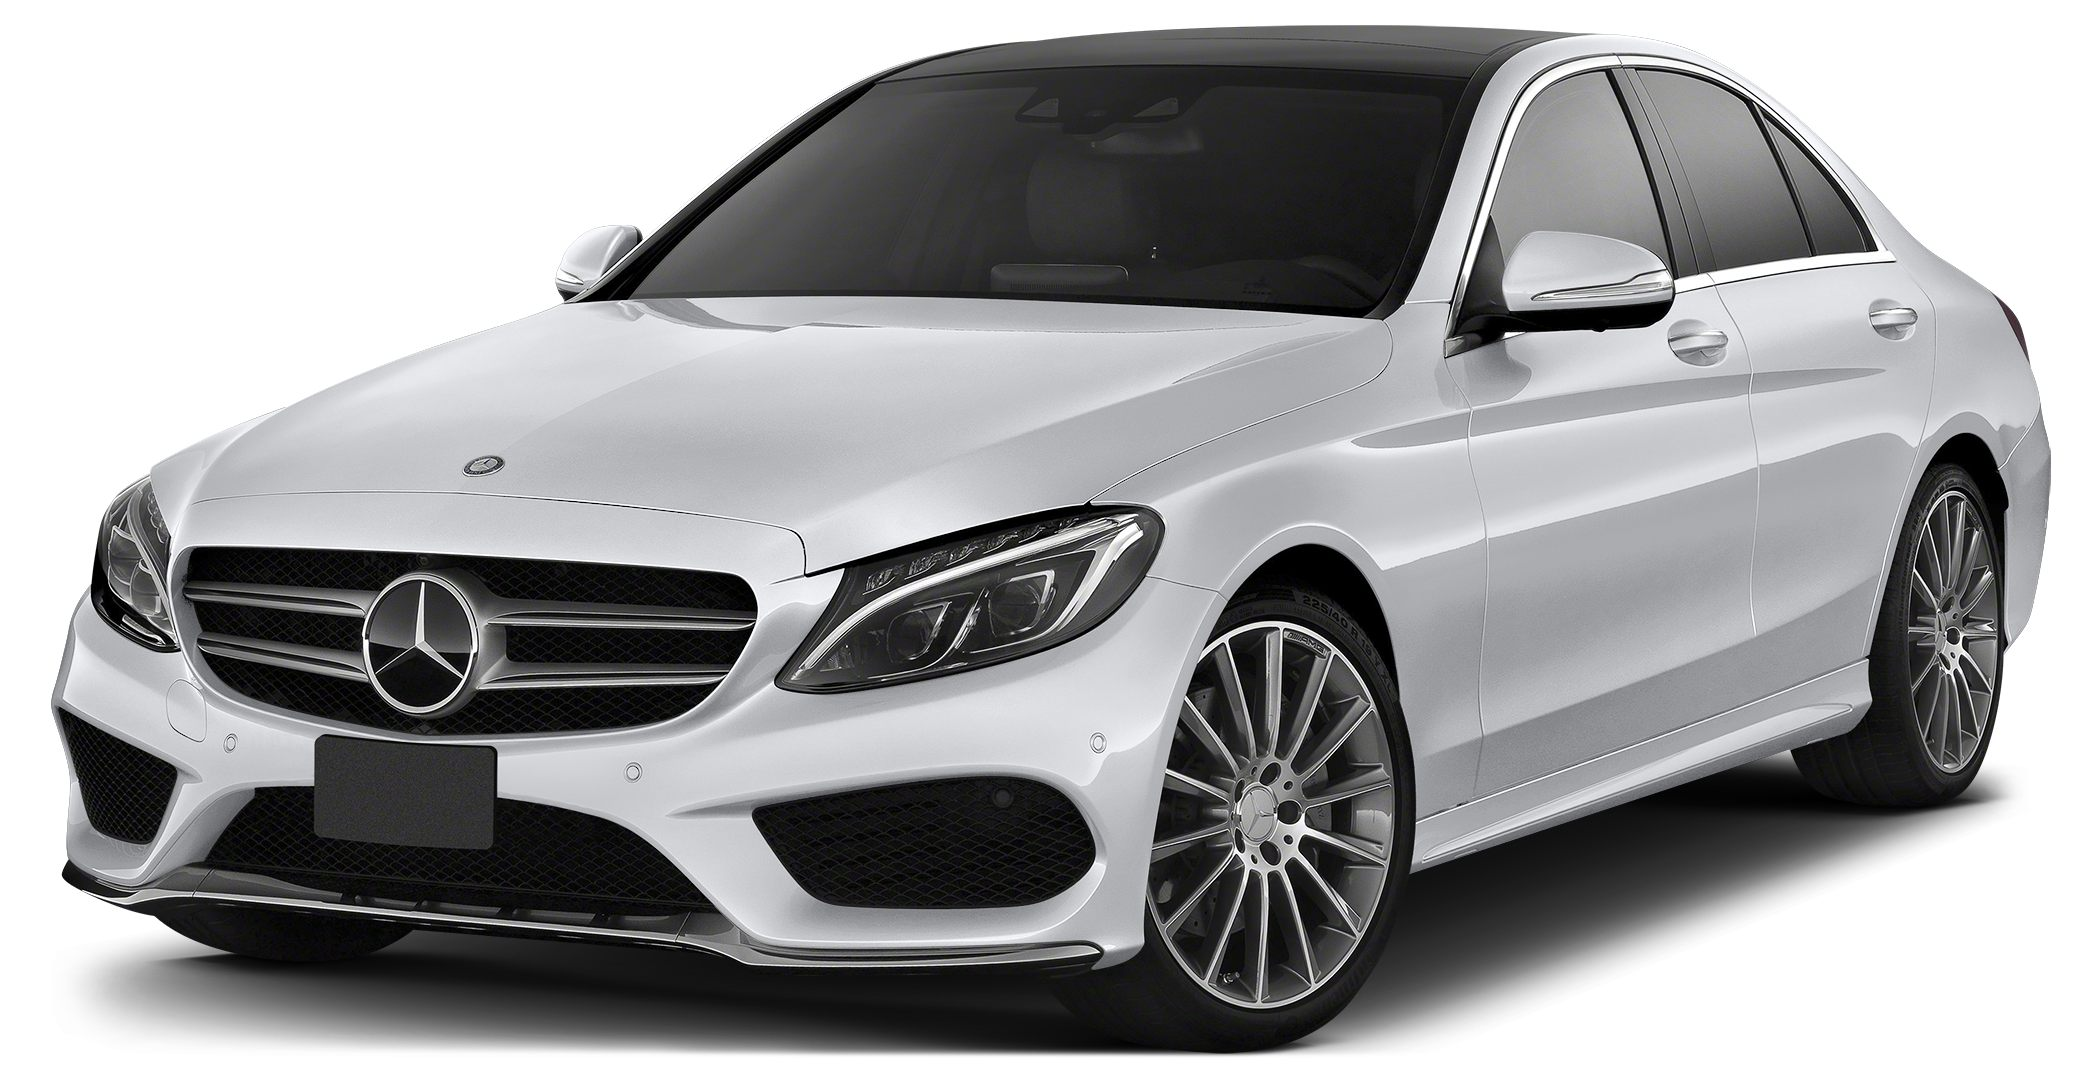 2015 MERCEDES C-Class C300 Sport 4MATIC This 2015 C300W4 Sport sedan is a low mileage MBUSA employ